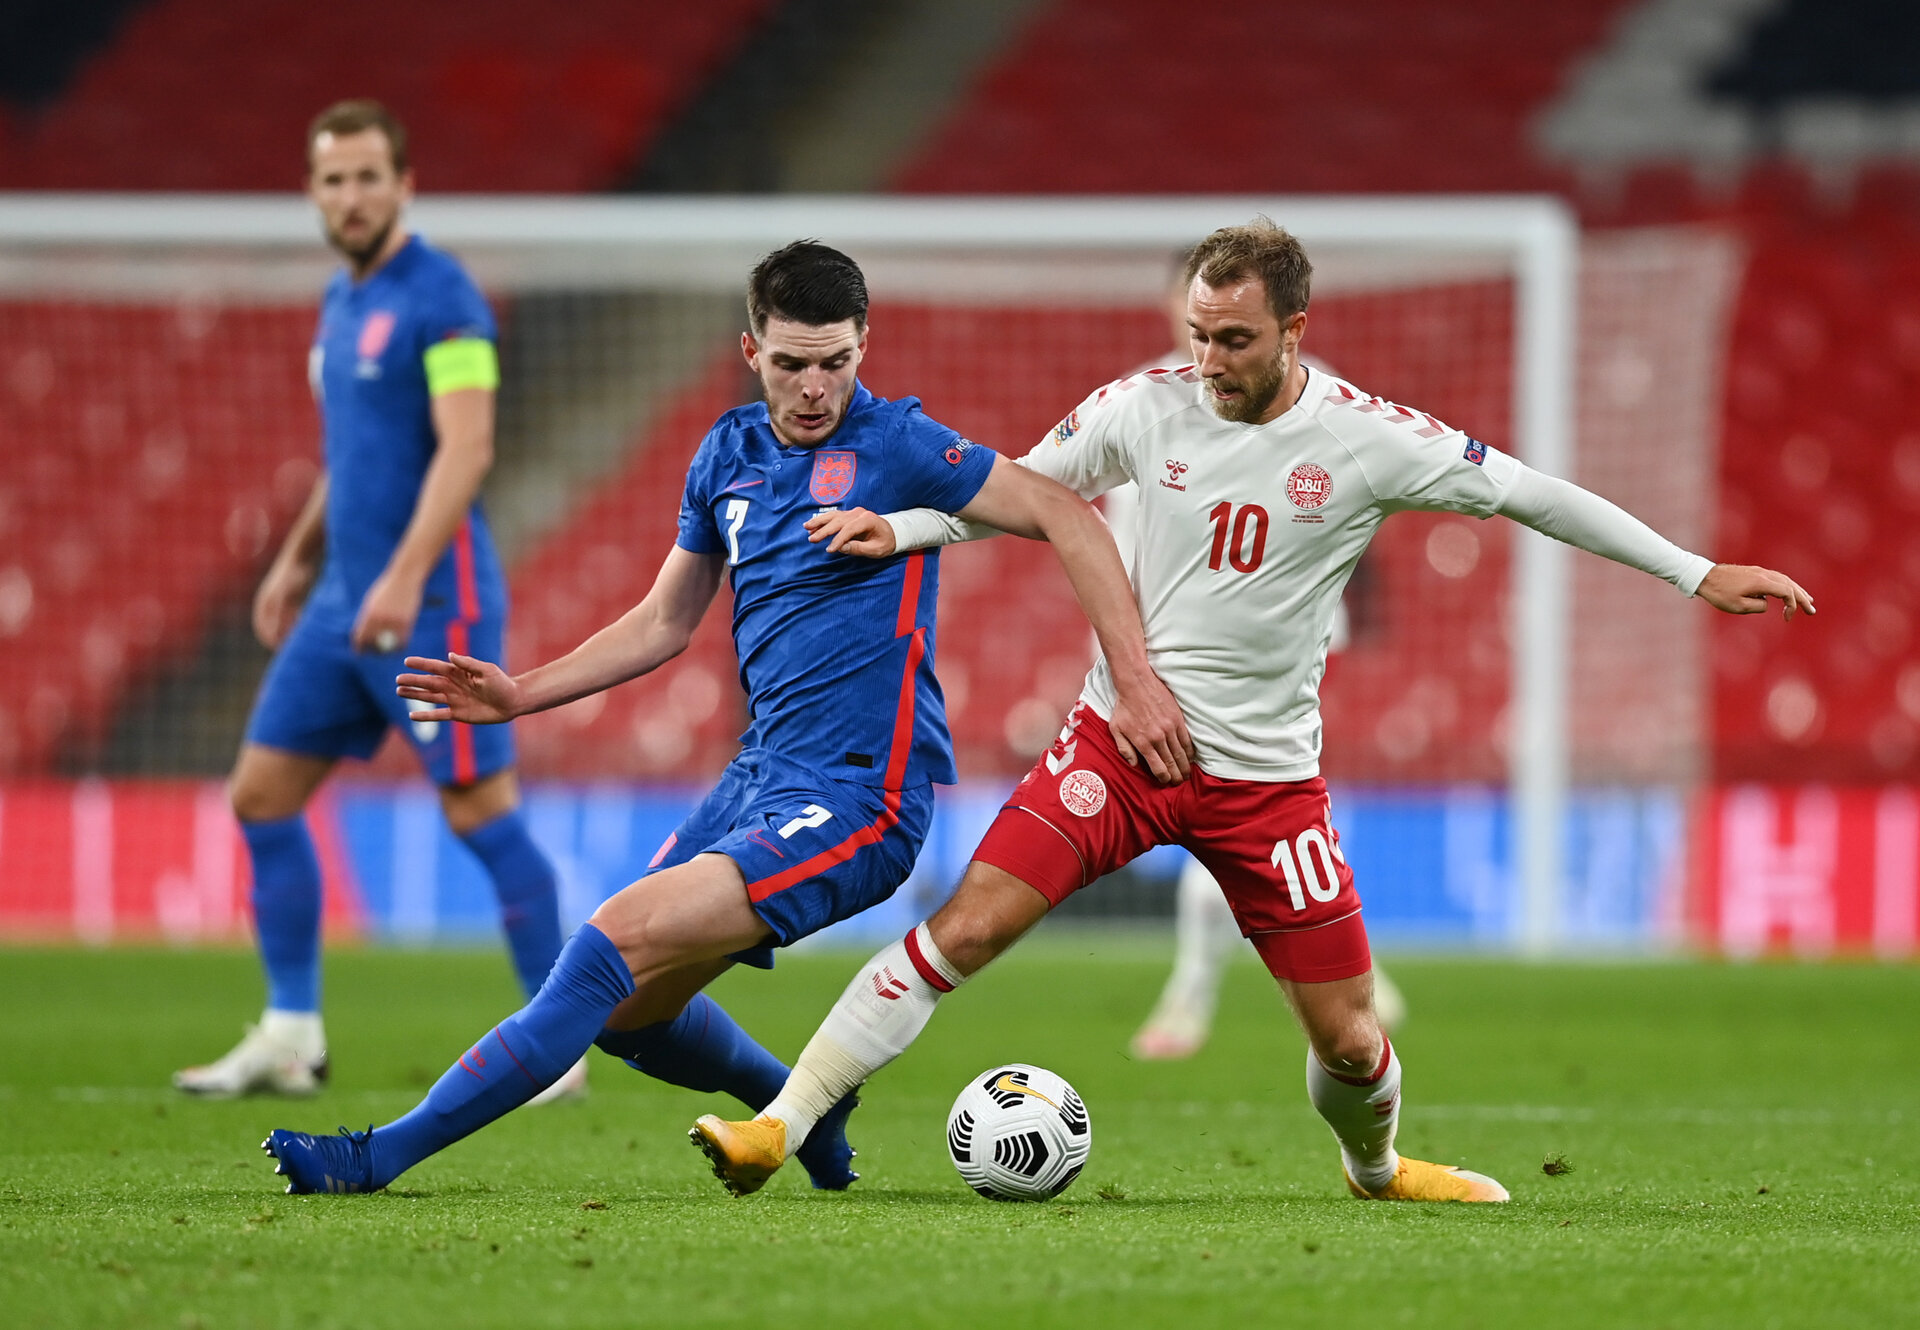 LONDON, ENGLAND - OCTOBER 14: Declan Rice of England  battles for possession with  Christian Eriksen of Denmark  during the UEFA Nations League group stage match between England and Denmark at Wembley Stadium on October 14, 2020 in London, England. Football Stadiums around Europe remain empty due to the Coronavirus Pandemic as Government social distancing laws prohibit fans inside venues resulting in fixtures being played behind closed doors. (Photo by Daniel Leal Olivas - Pool/Getty Images)